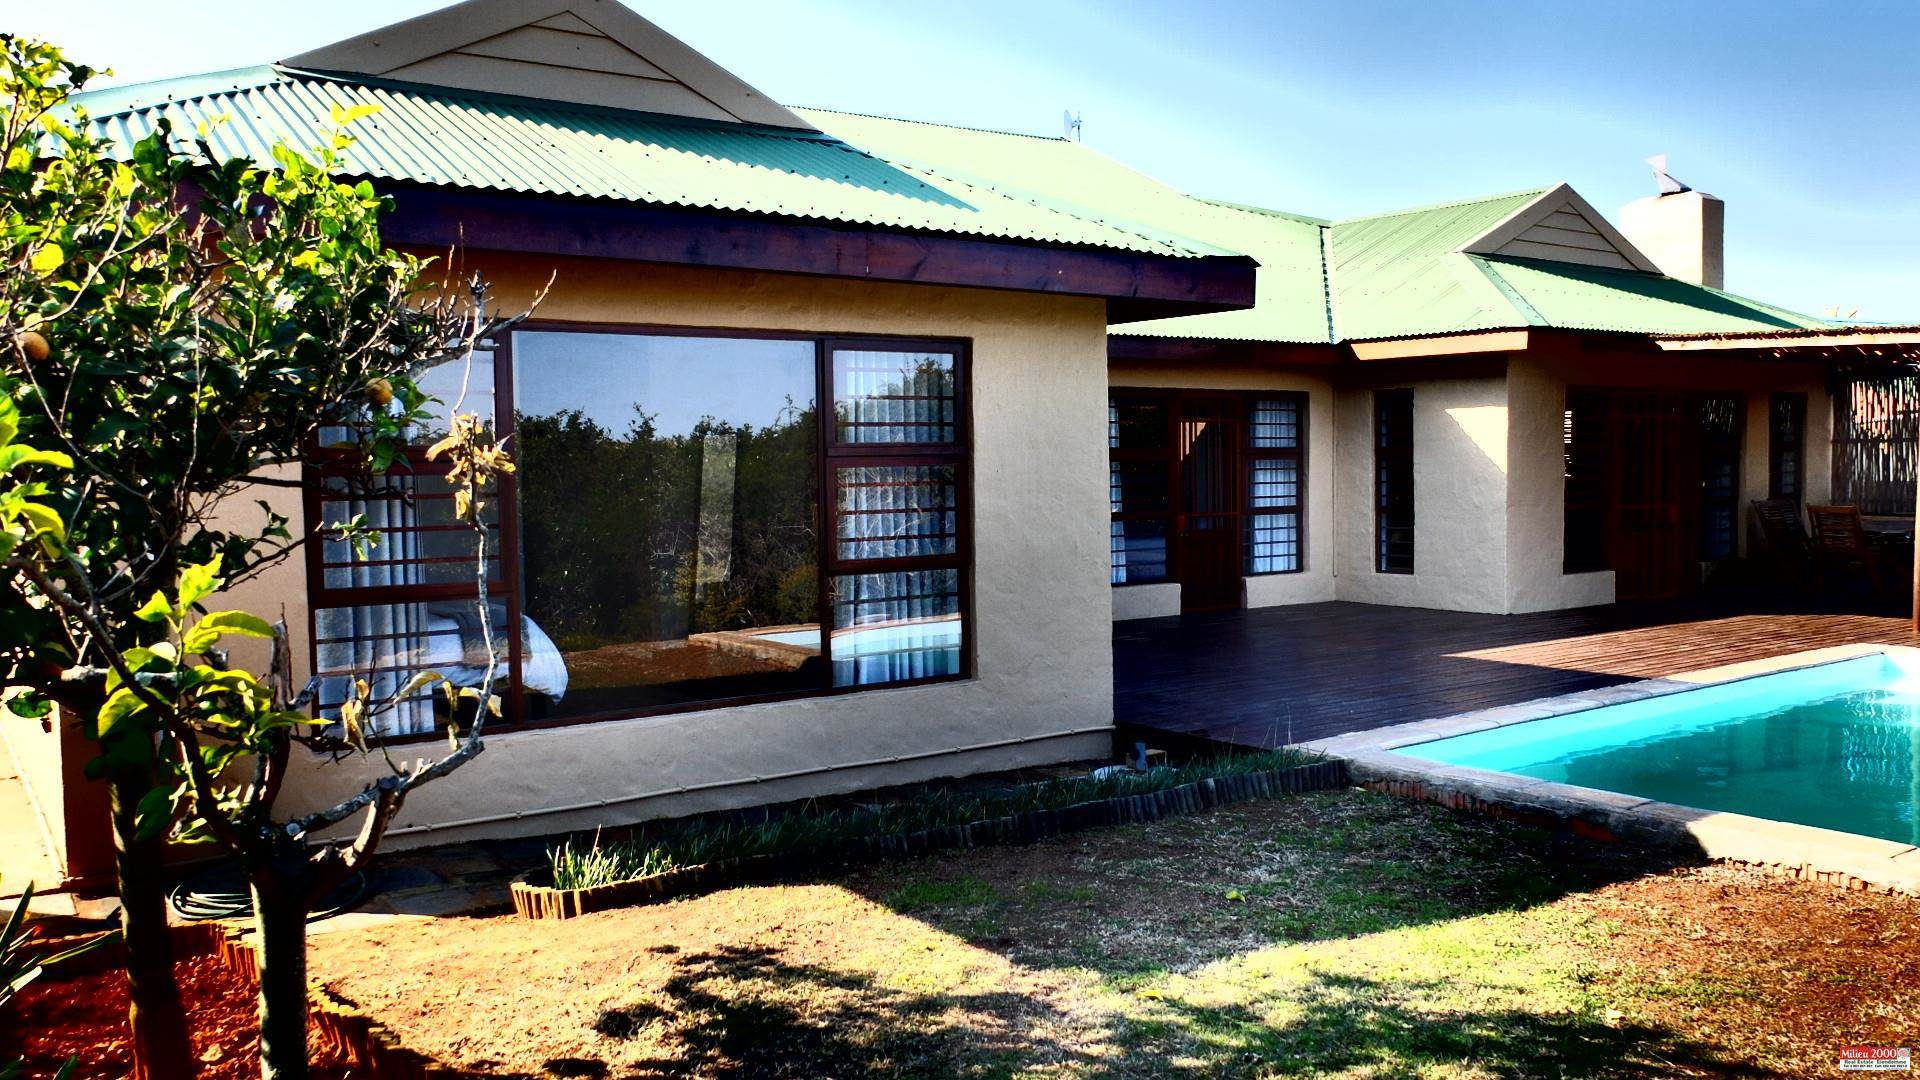 House For Sale: WAVE CREST, JEFFREYS BAY (Bath : 2.0 - Beds : 3.0 - This beautiful home has been designed to complement the modern-day lifestyle and is ideal for the en ...